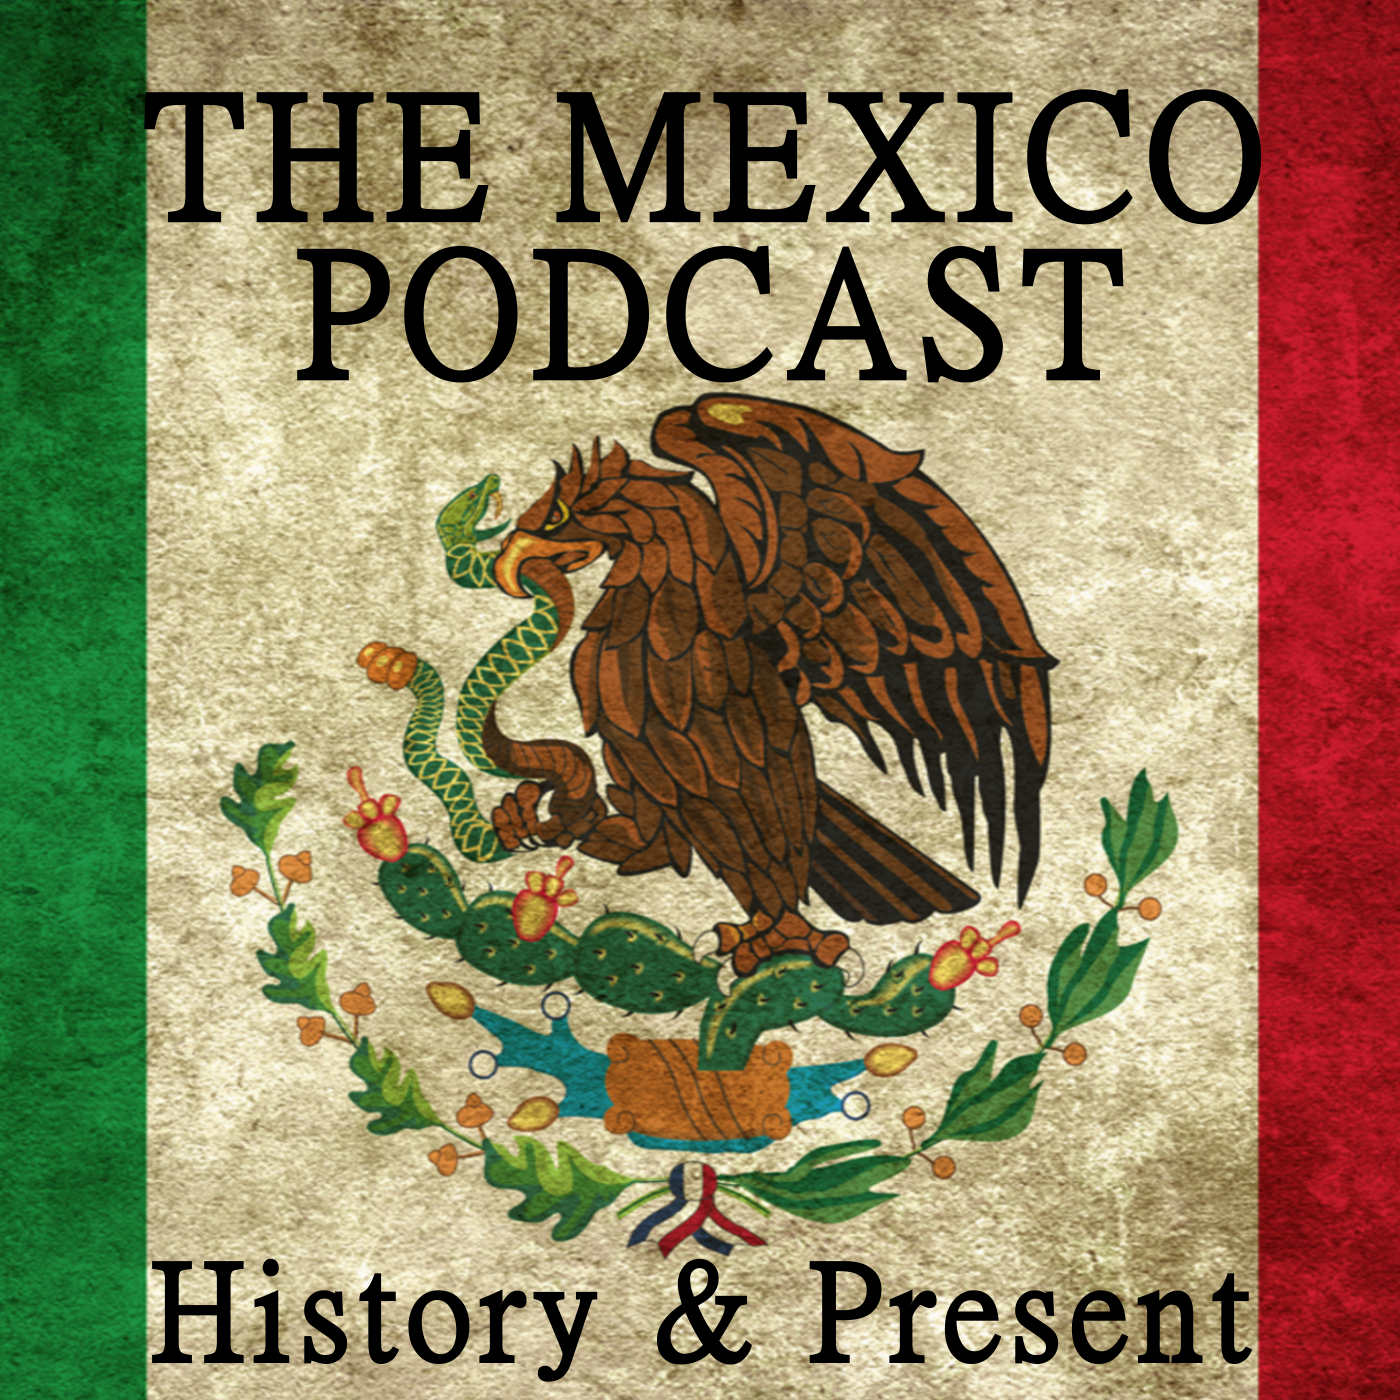 The Mexico Podcast: History & Present